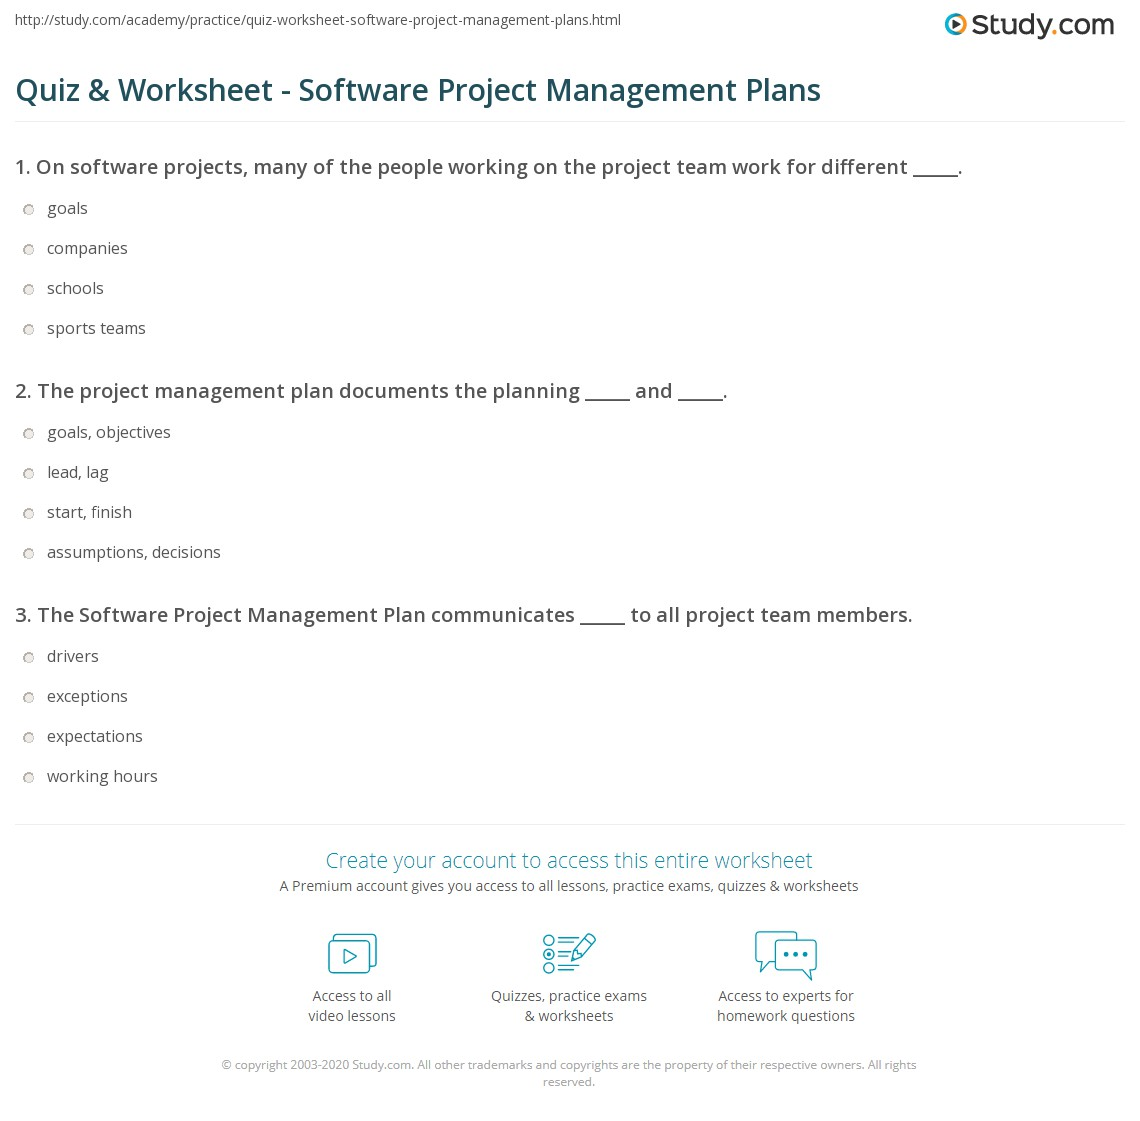 Quiz Worksheet Software Project Management Plans Study